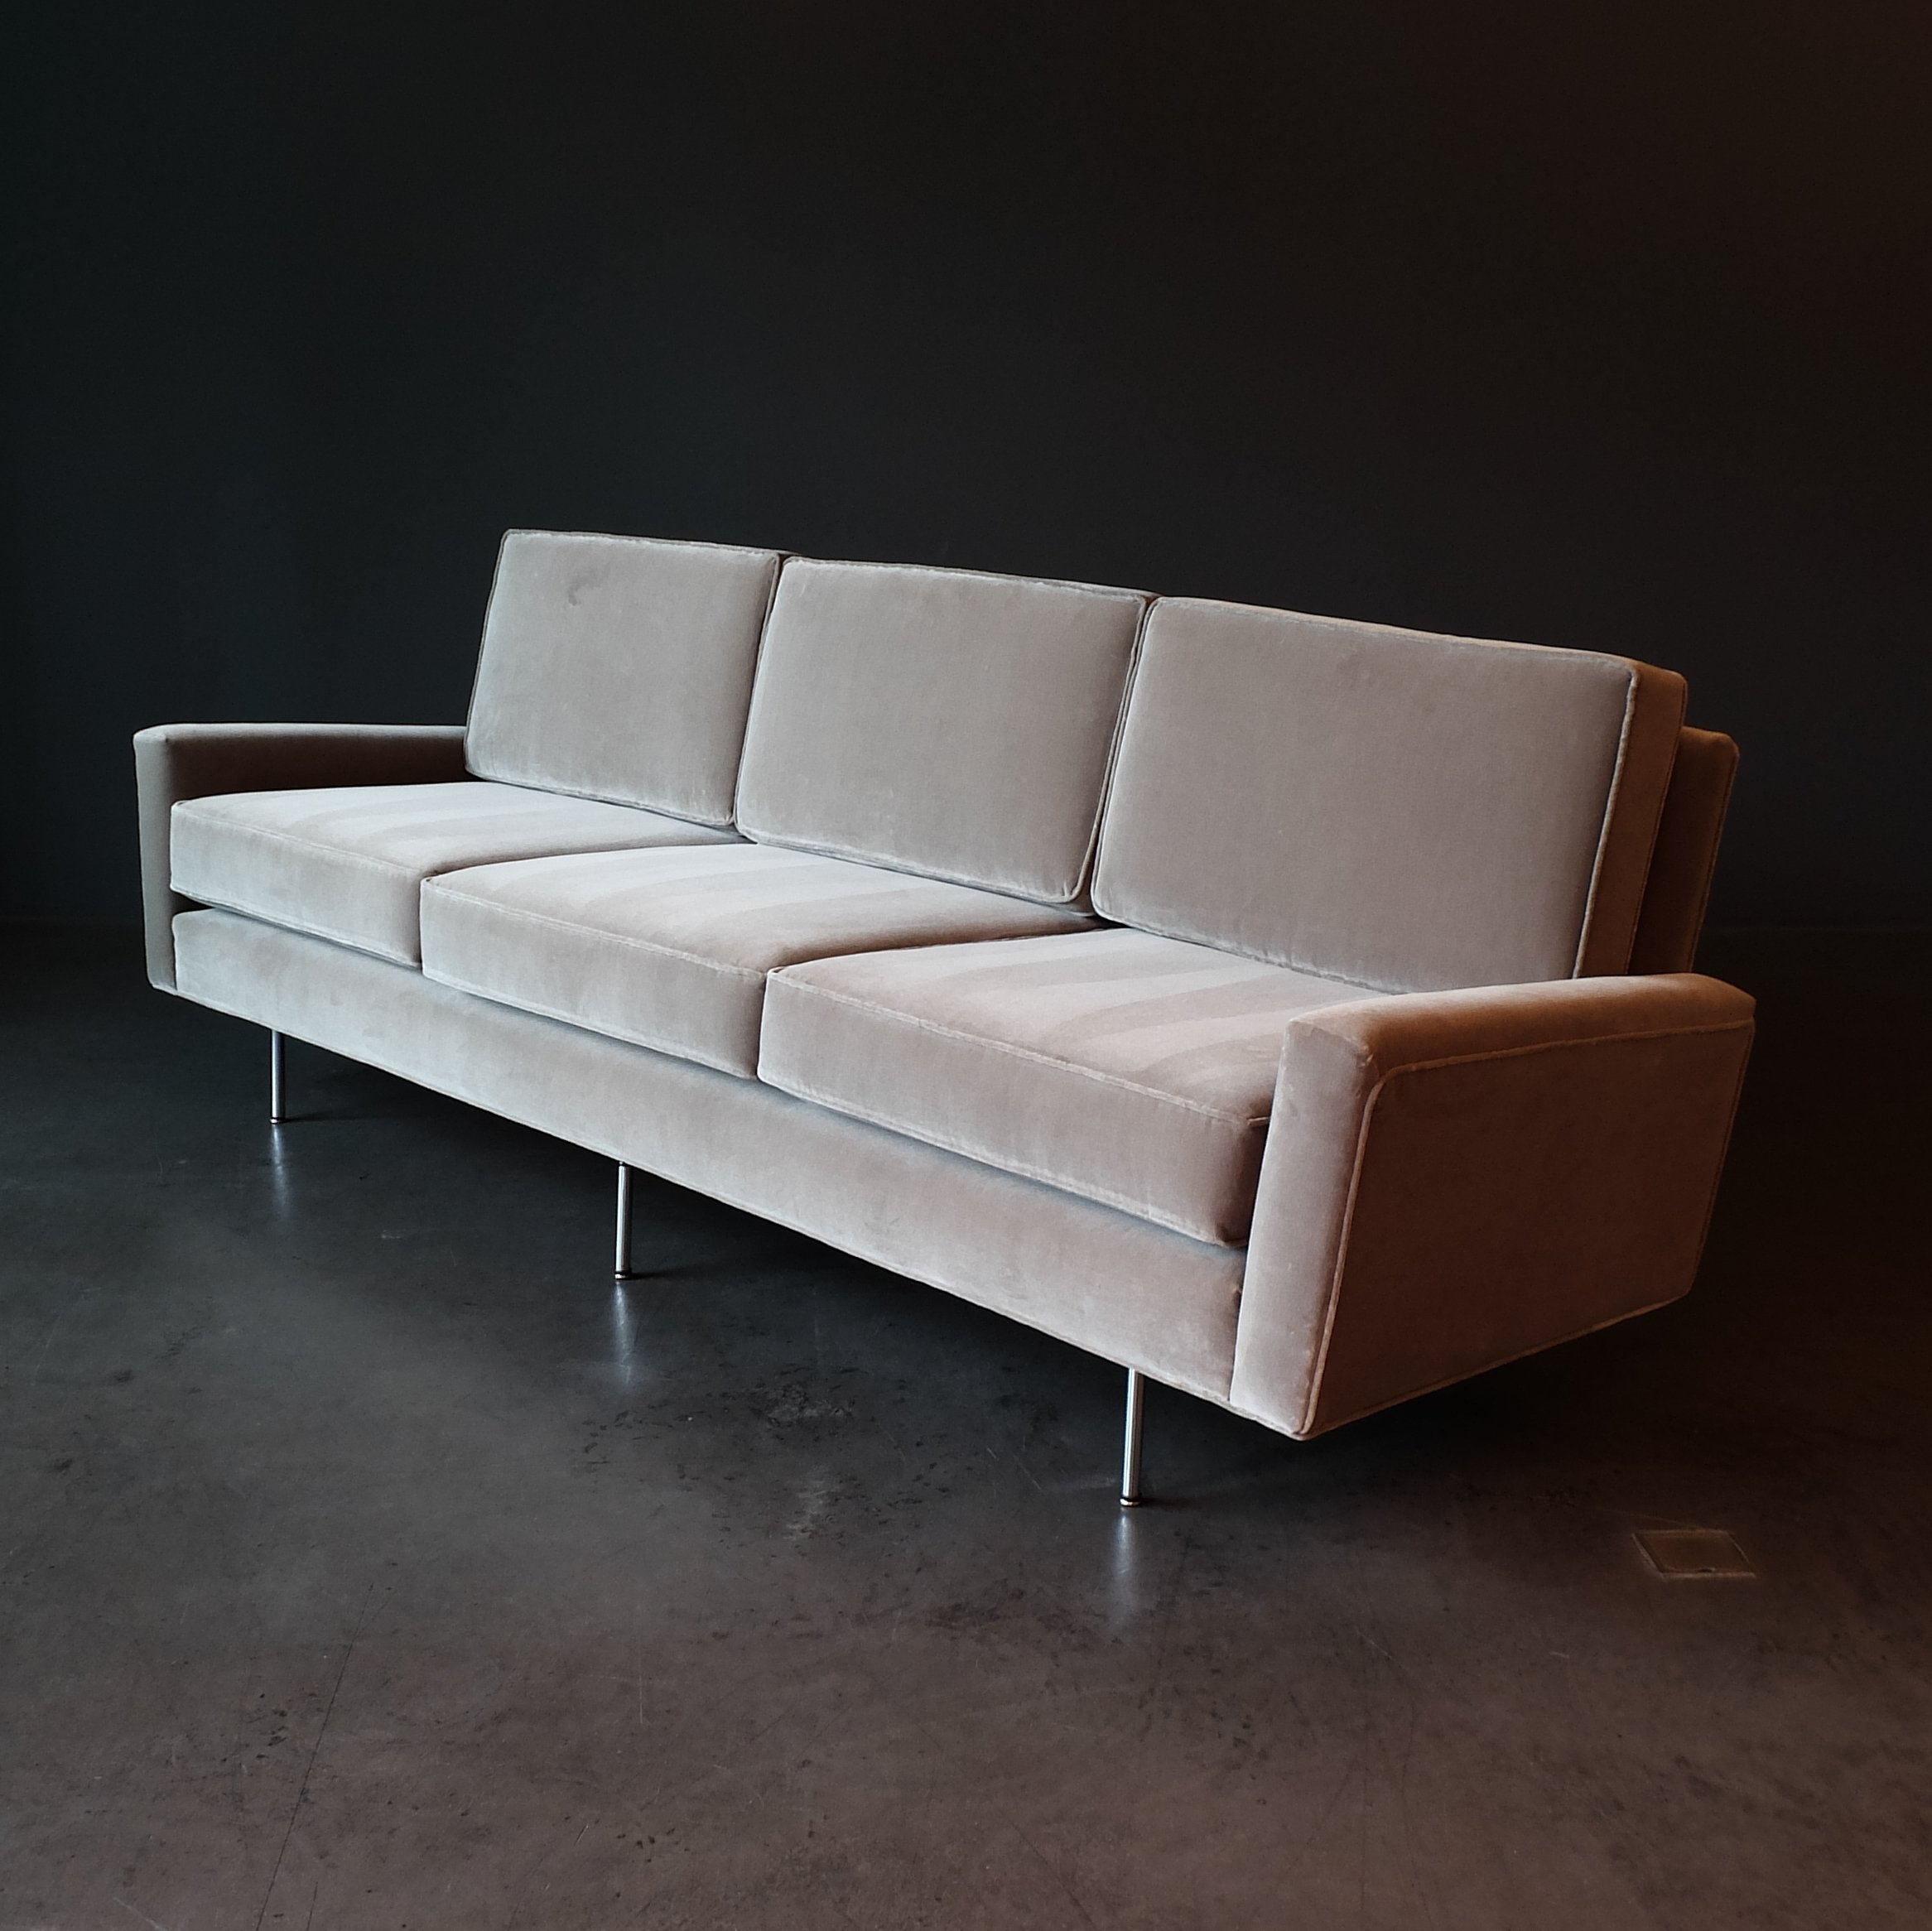 florence knoll sofa review leather cleaning dundee 3 seater home co